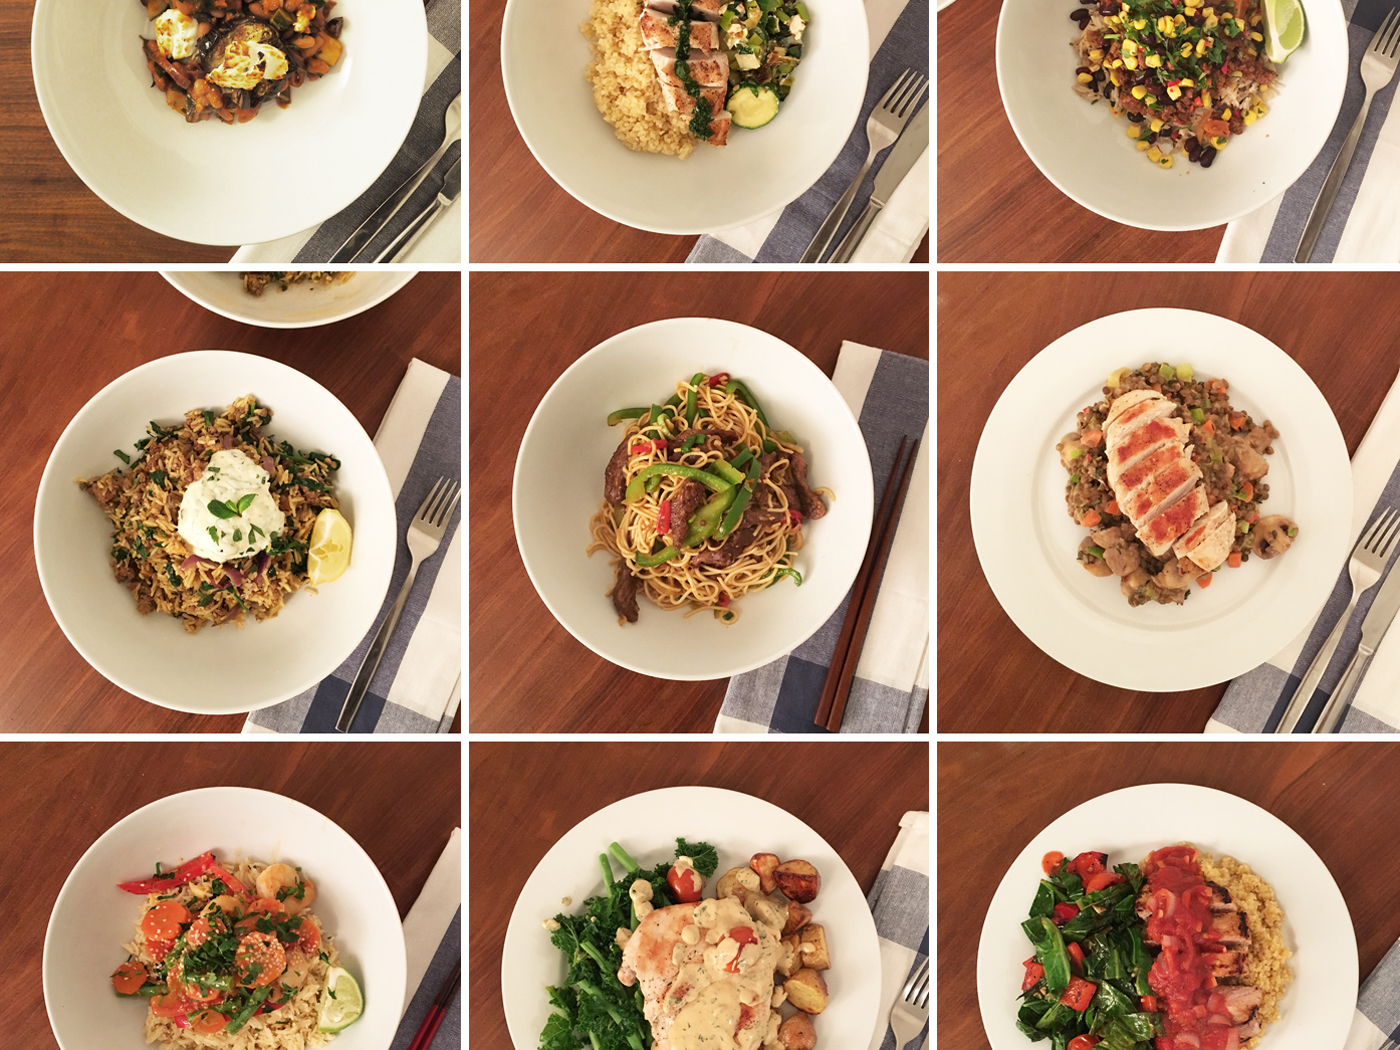 Cheap Meal Kit Delivery Service Hellofresh Used Prices